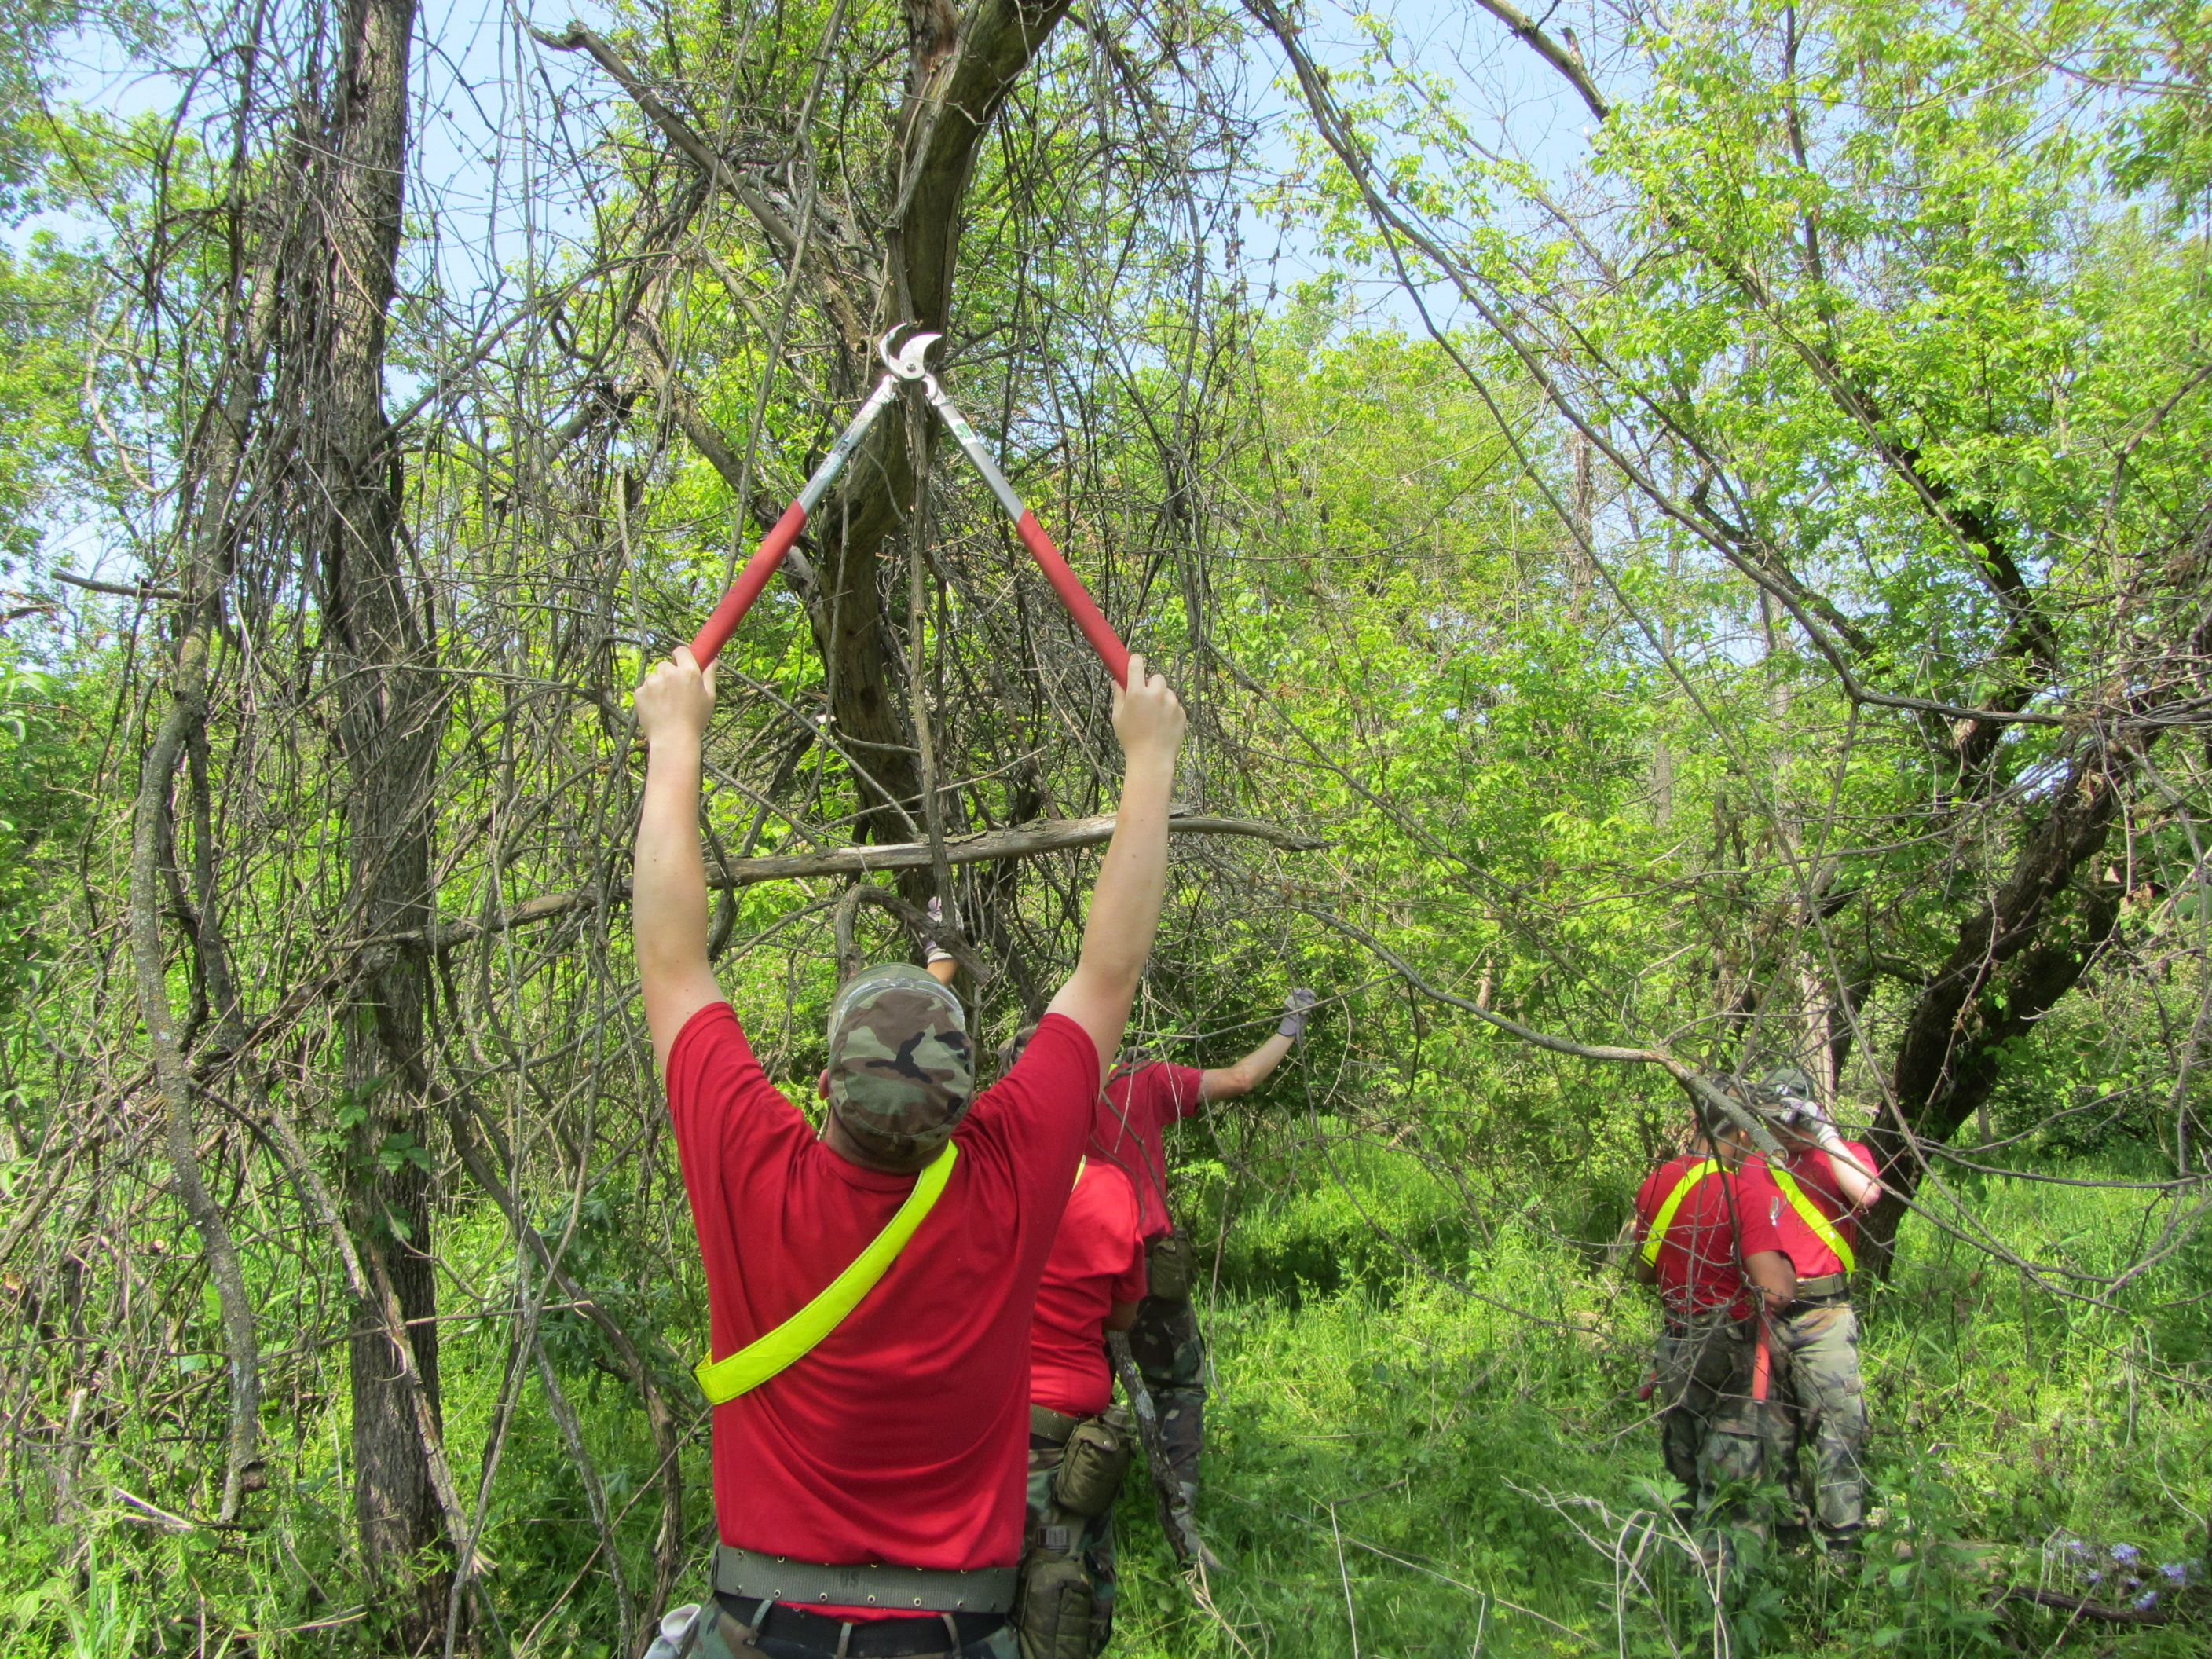 Volunteers work to trim plants at the Mississippi Valley Conservancy